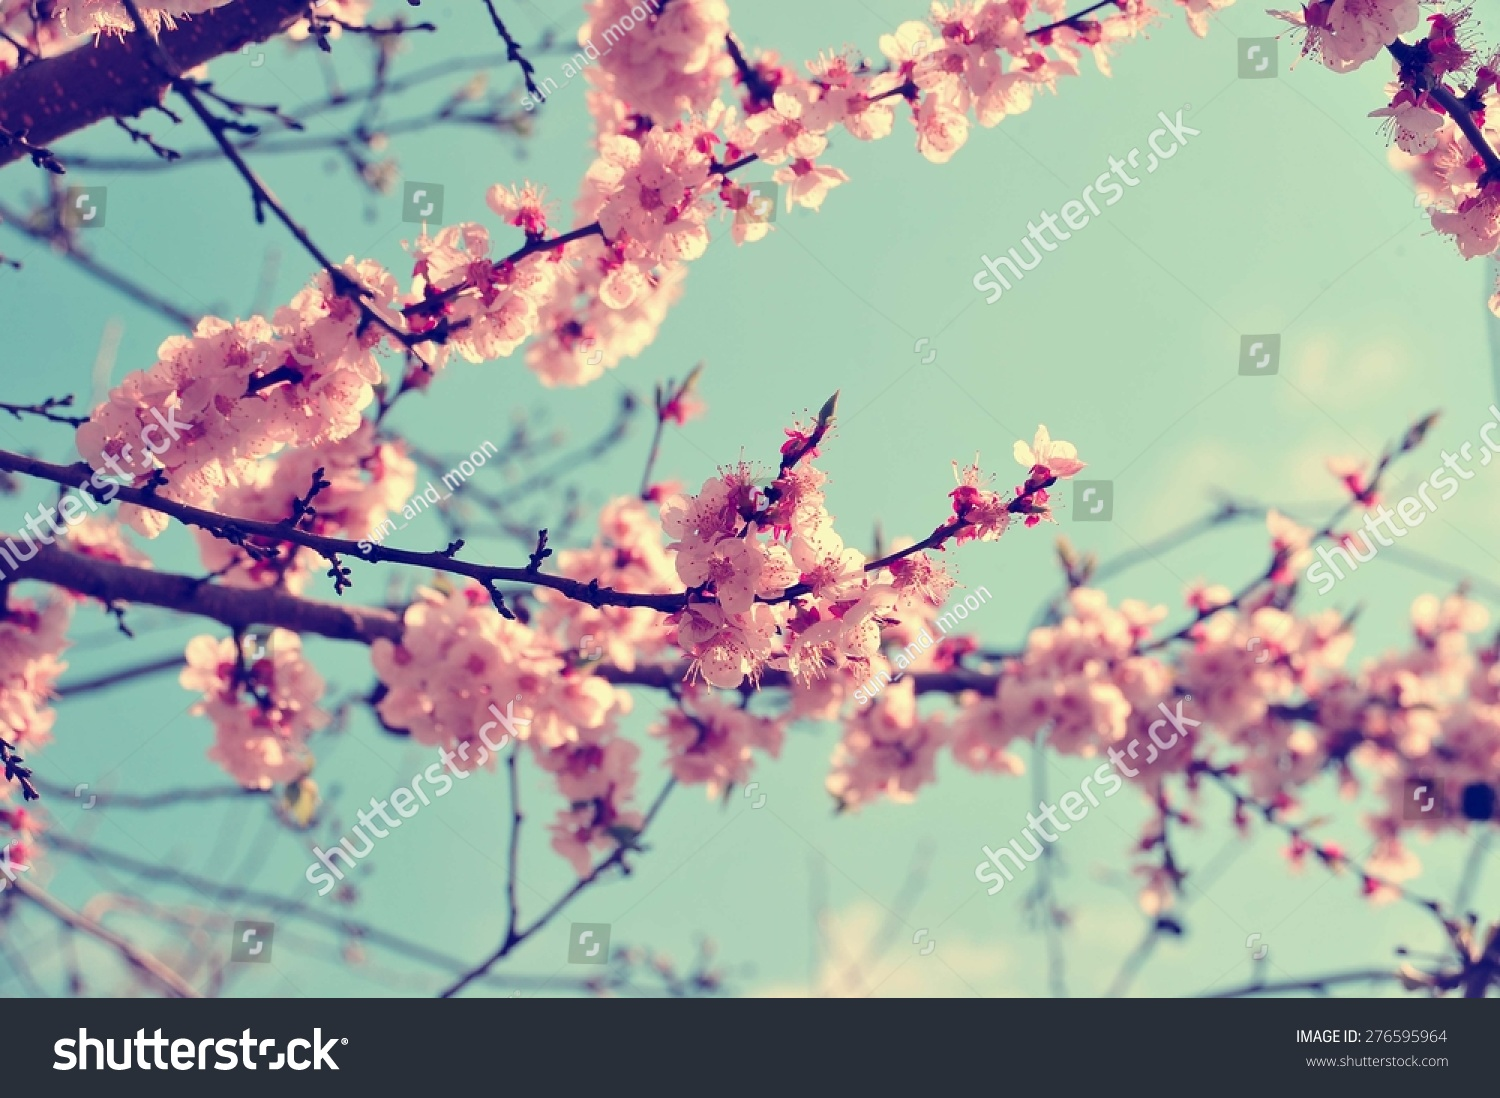 Royalty Free Apricot Tree Branch With Flowers 276595964 Stock